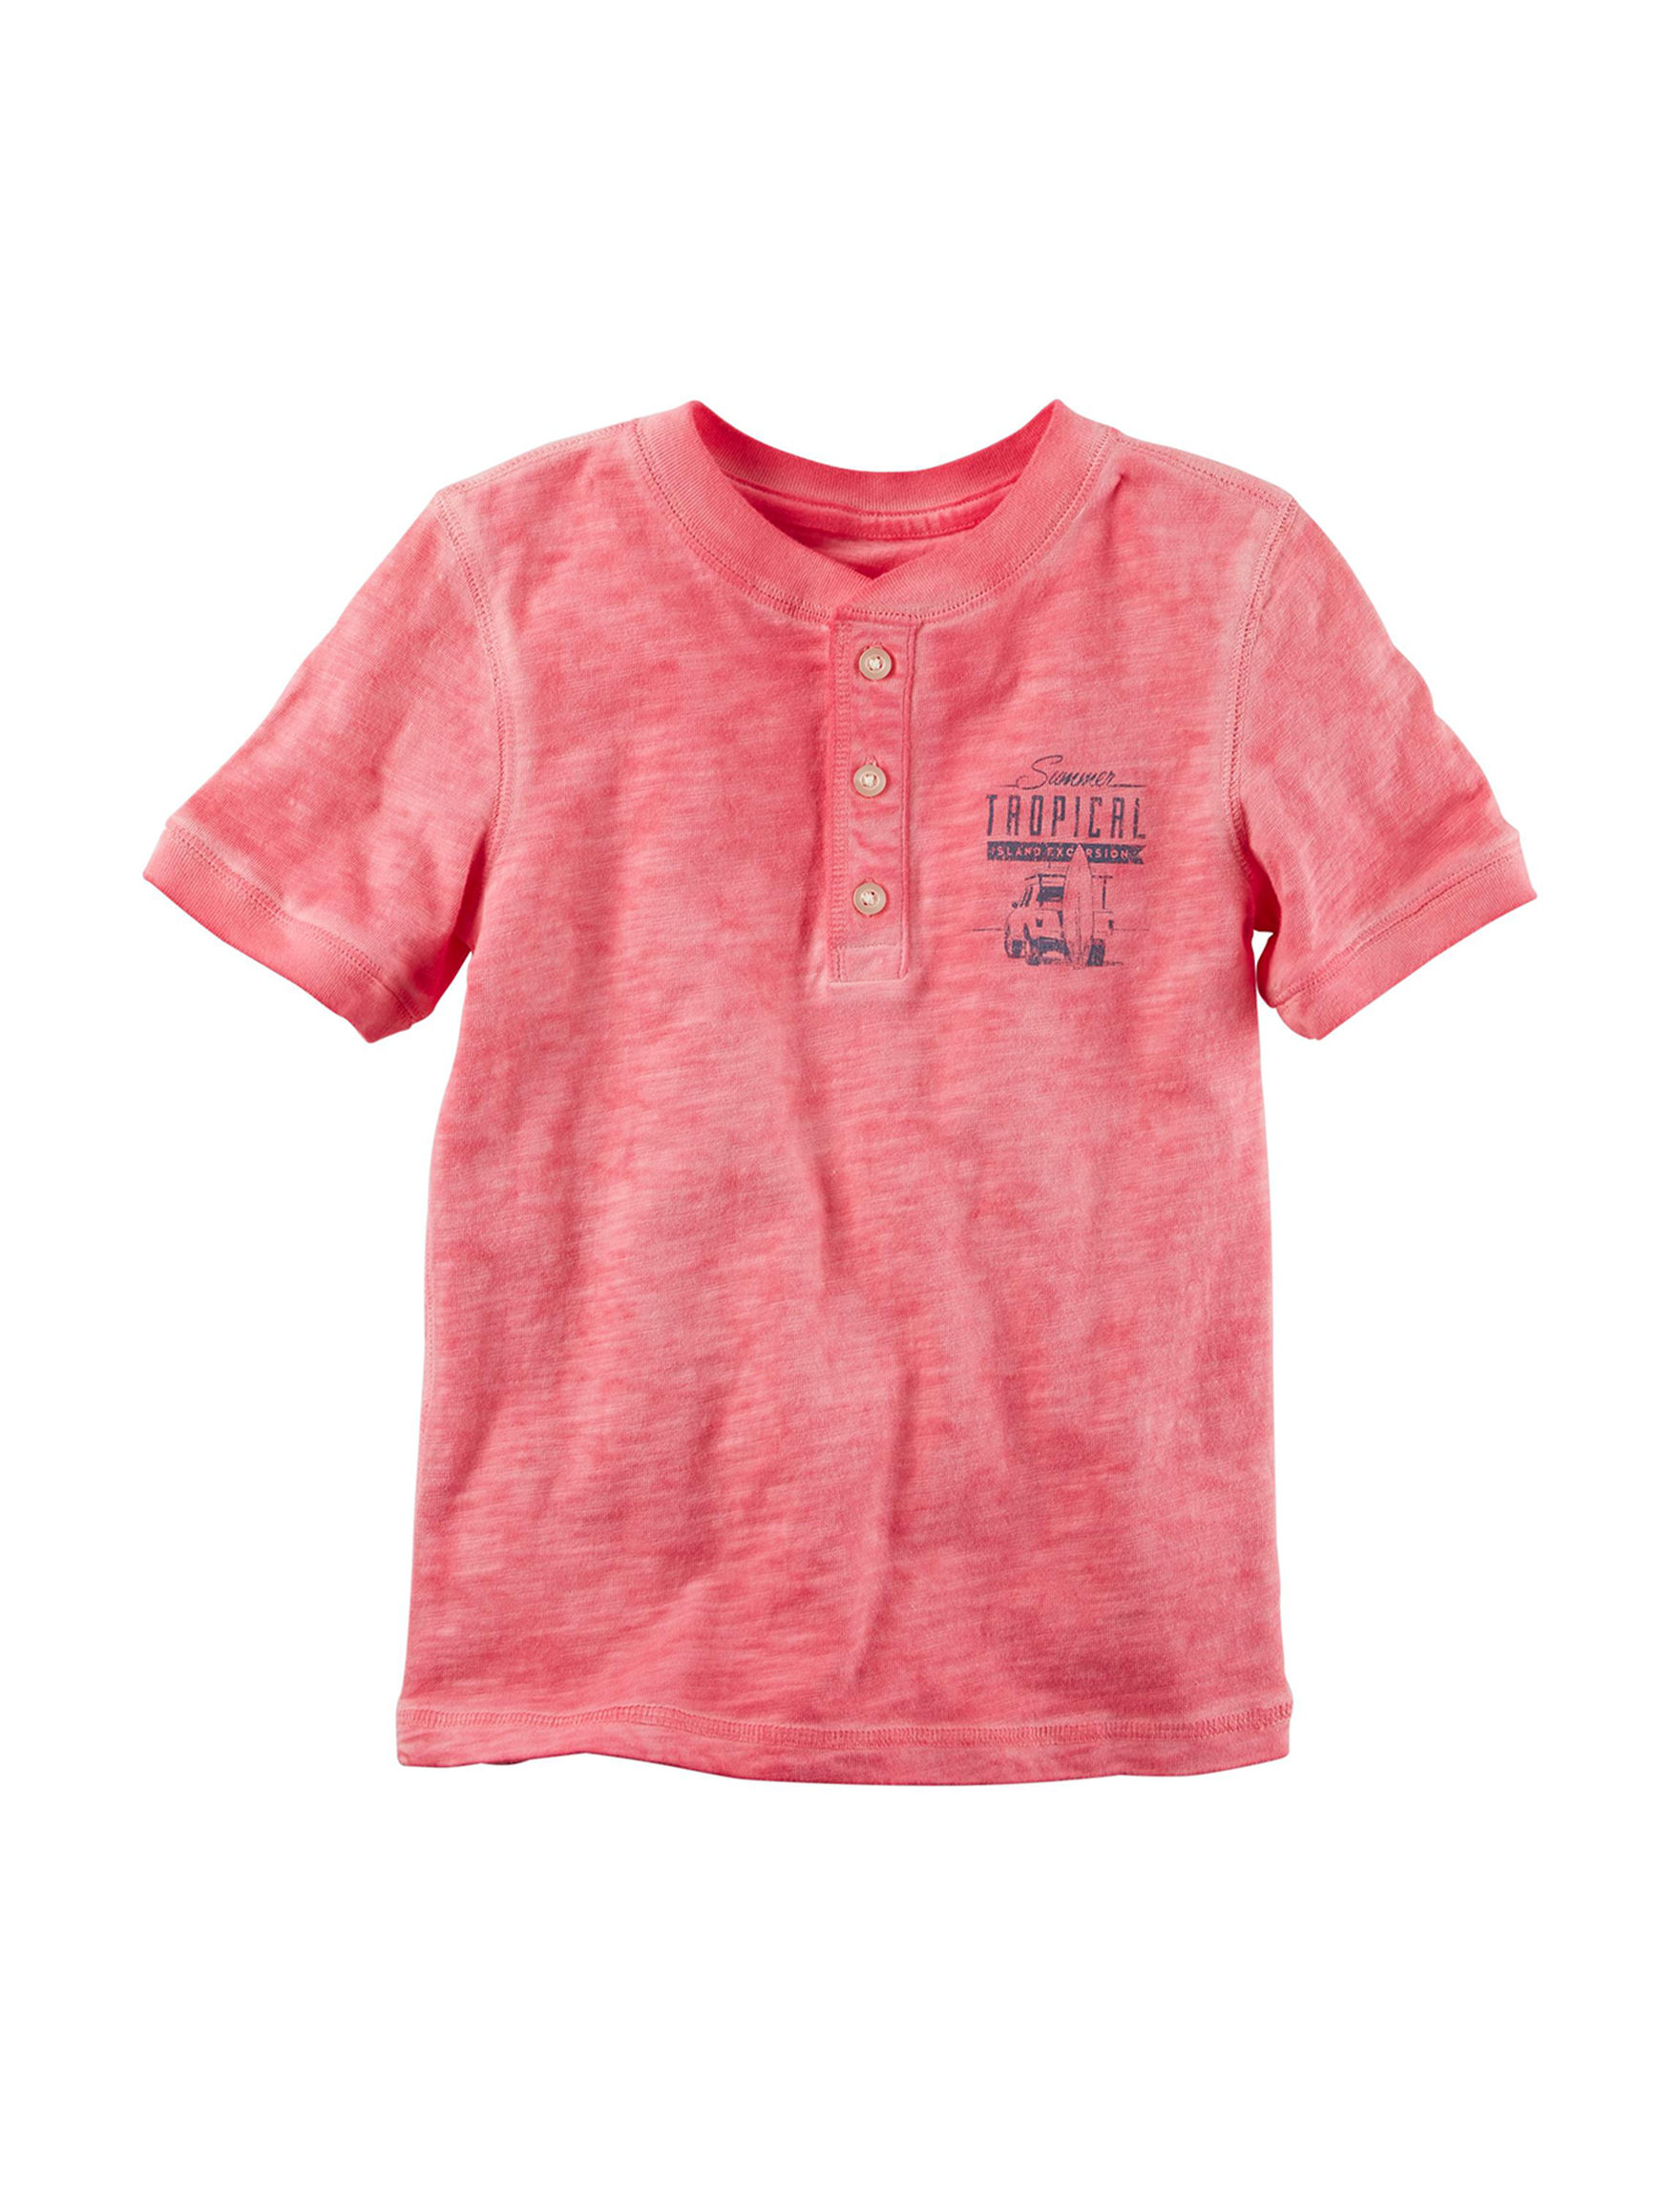 Carter's Pink Tees & Tanks